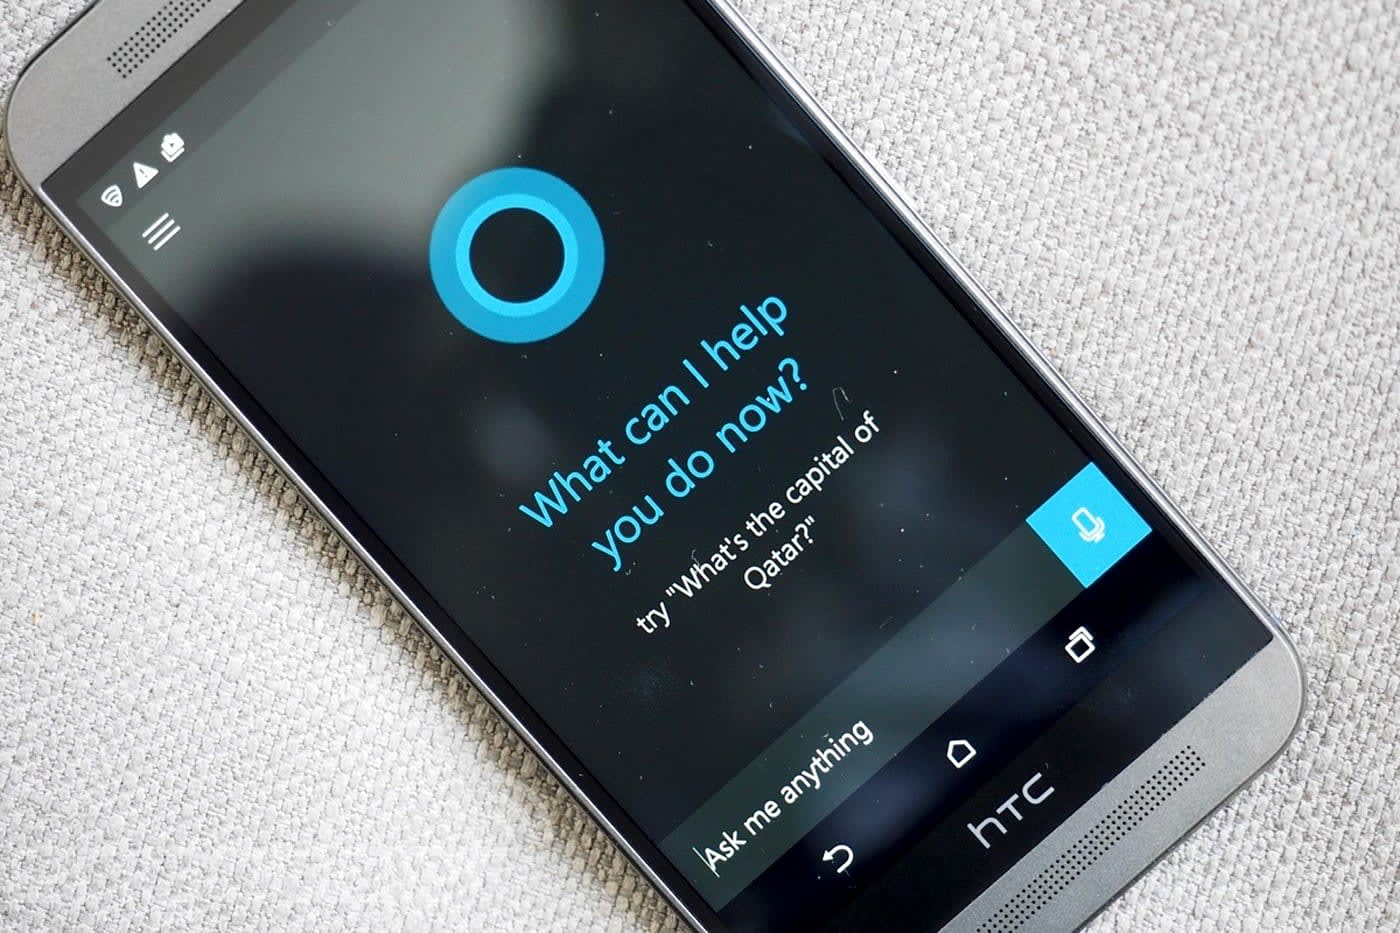 Microsoft officially launches Cortana on iPhone and Android